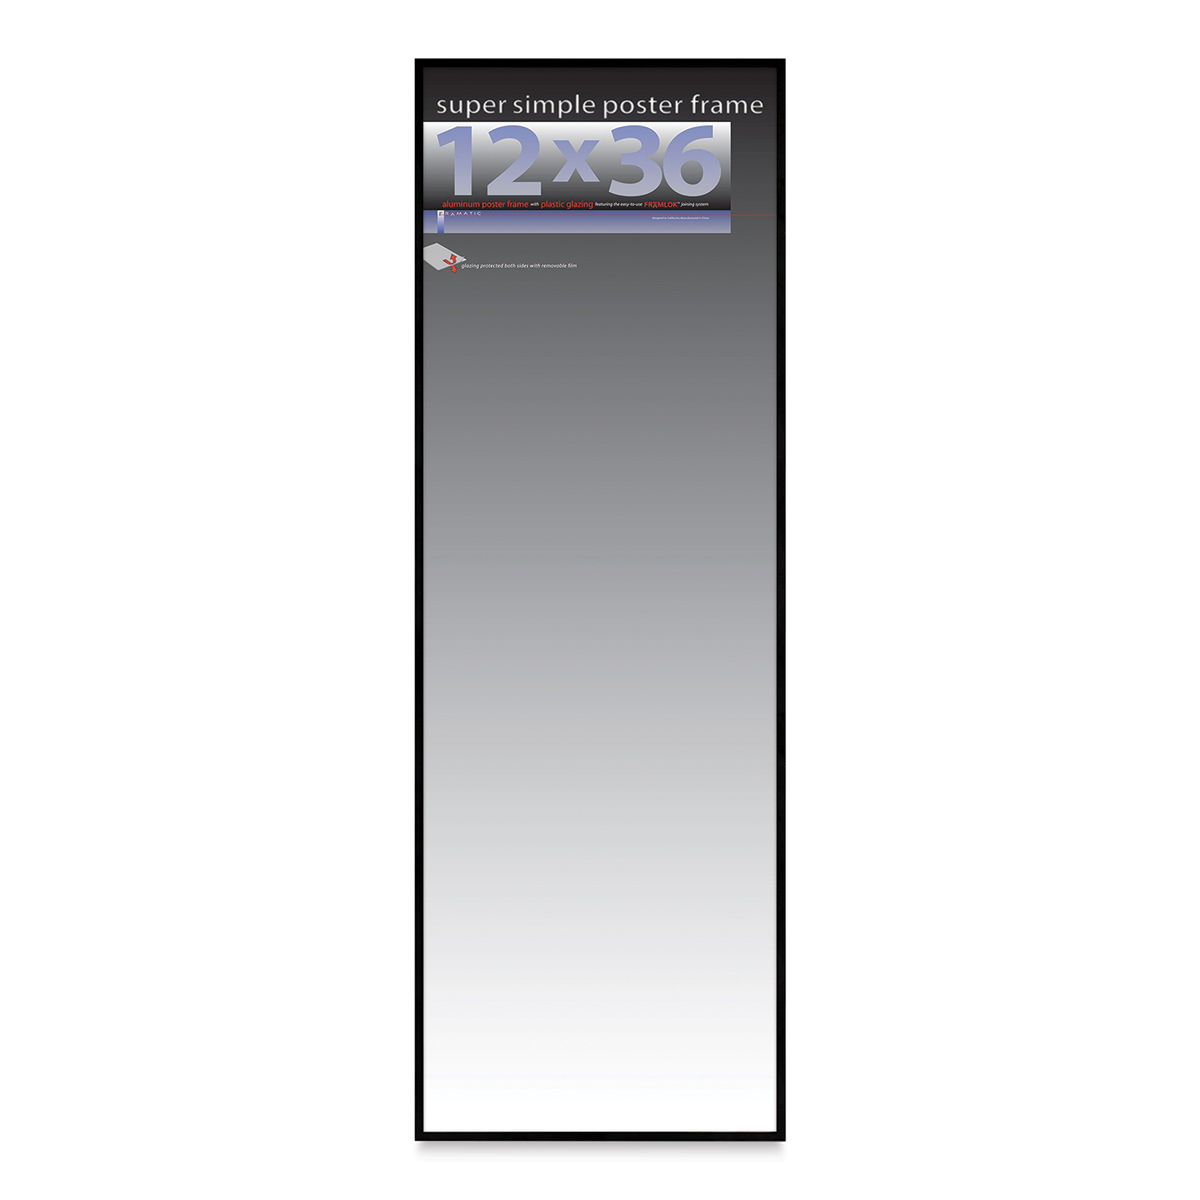 EUROLINE35 Picture Frame 20x60 or 60x20 cm with Entspiegeltem Acrylic Glass